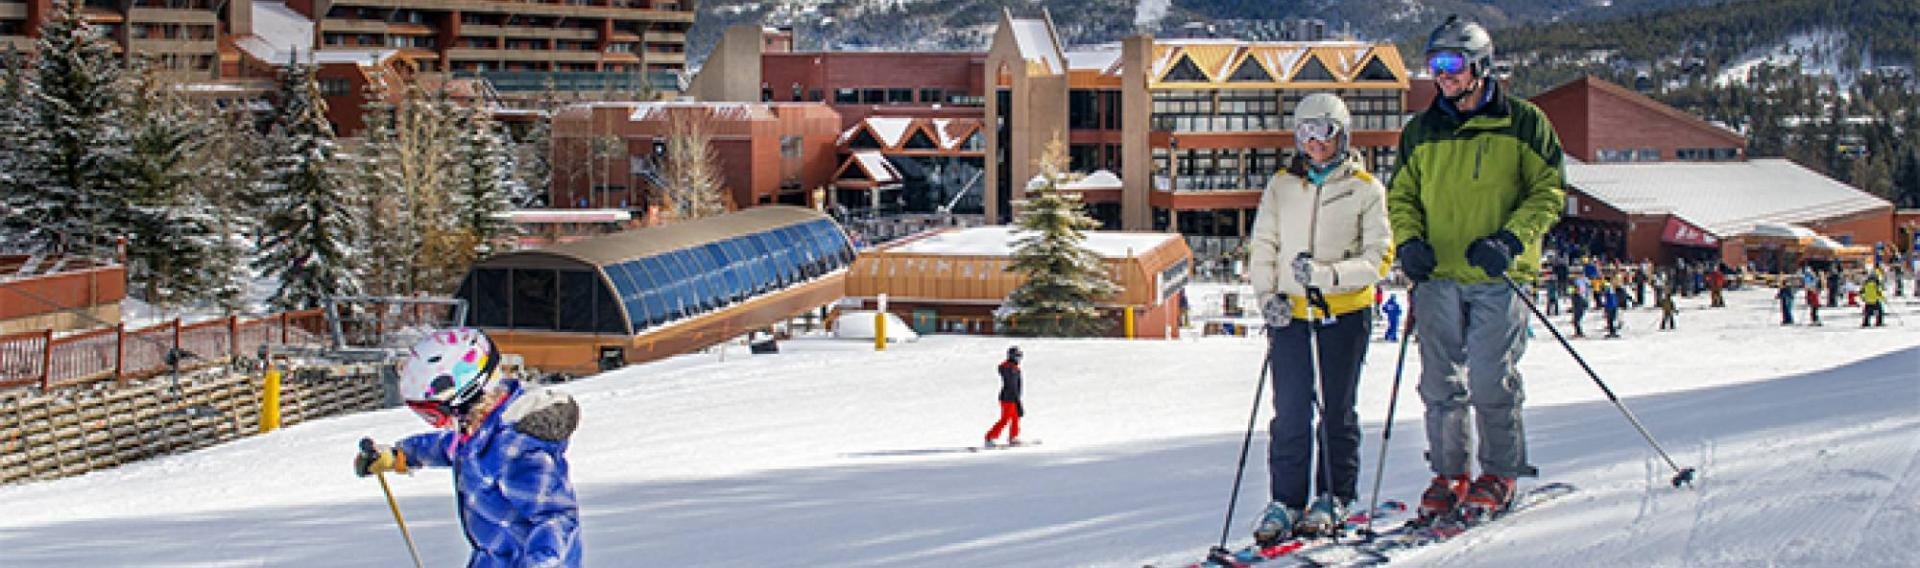 Beaver Run Resort and Conference Center in Breckenridge, Colorado for CME, CLE, and CE